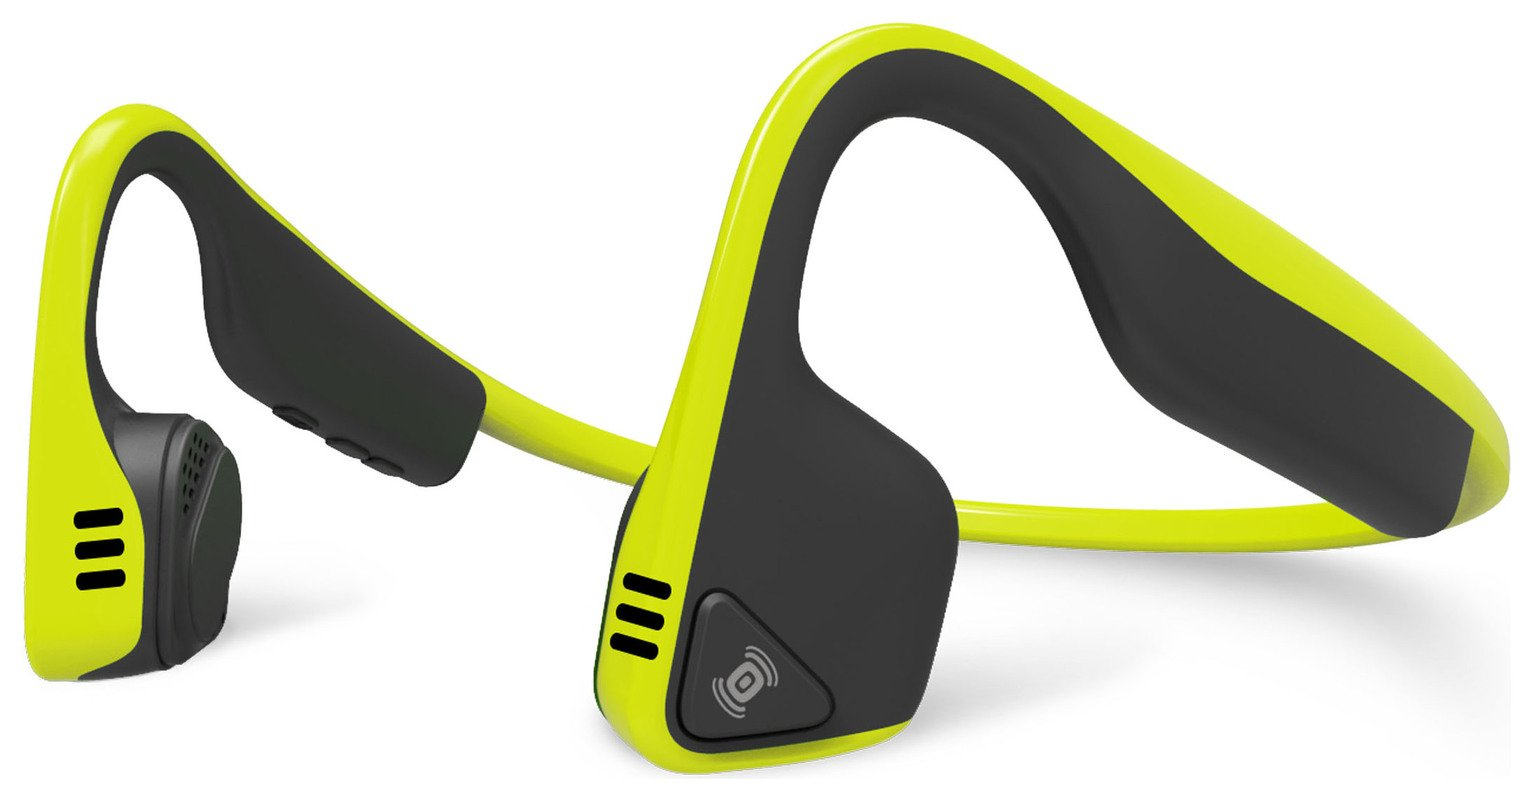 Aftershokz Trekz Titanium On-Ear Wireless Headphones - Green